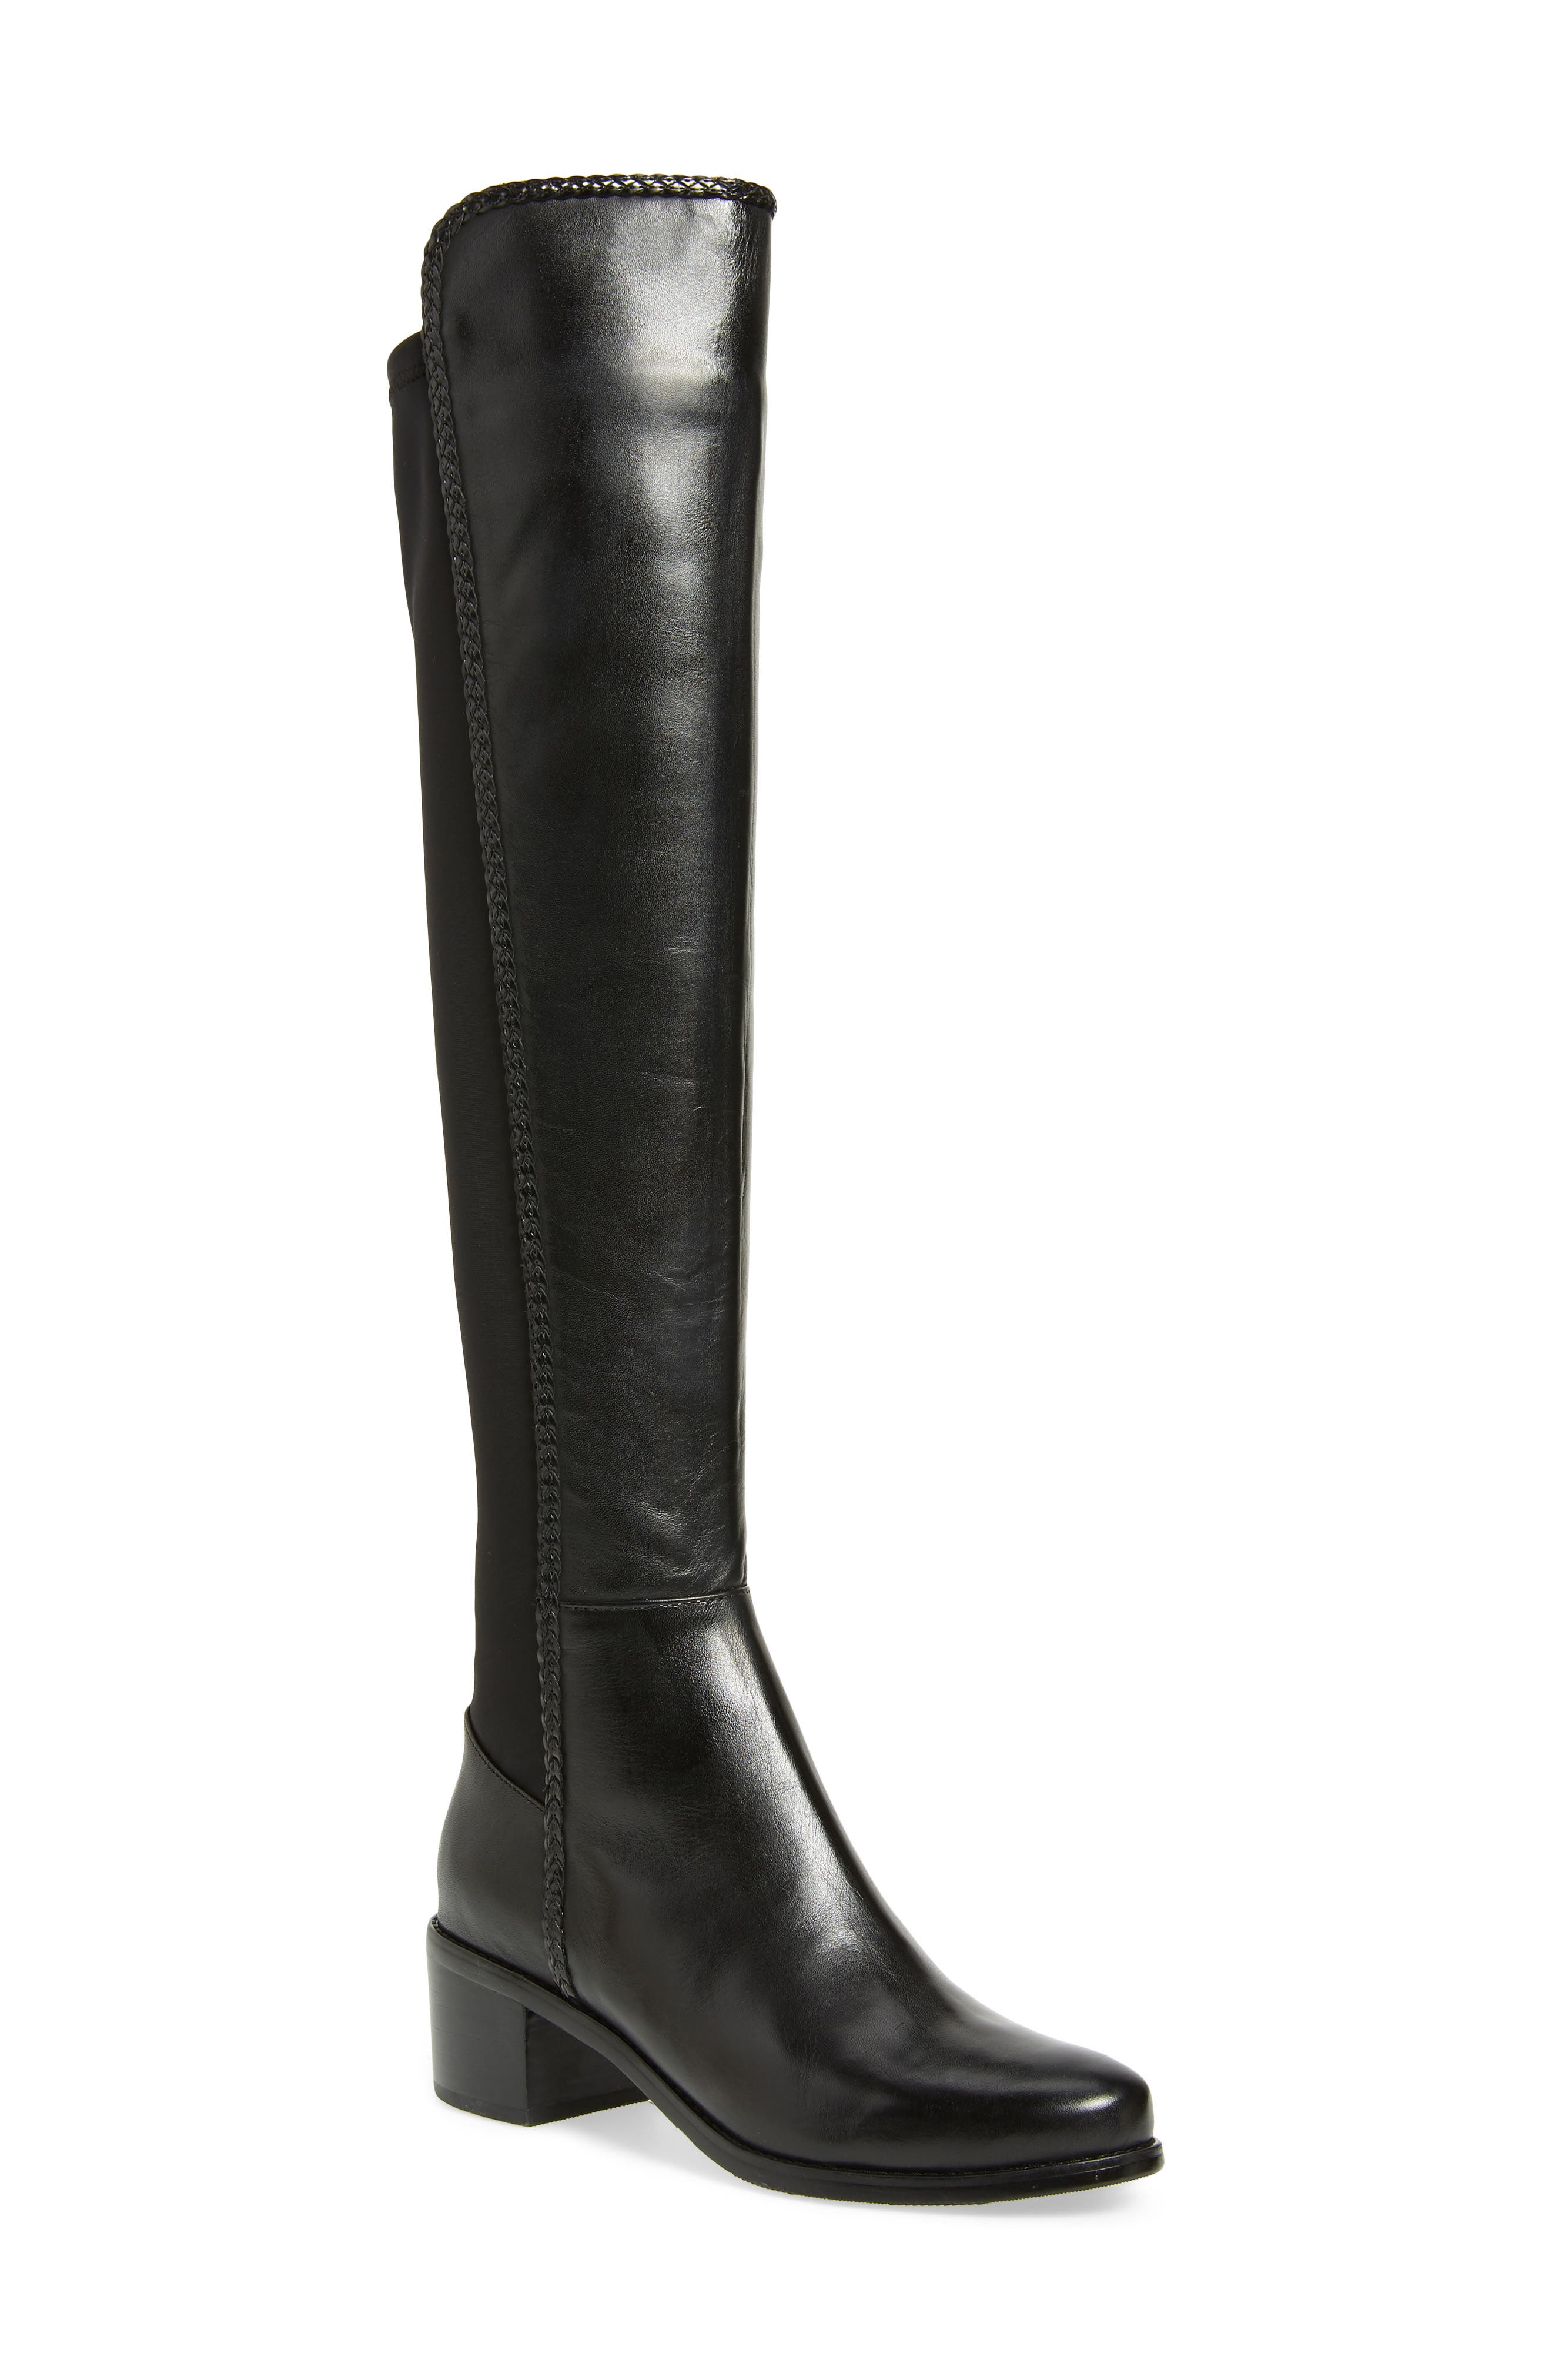 AQUADIVA, Florence Waterproof Over the Knee Boot, Main thumbnail 1, color, BLACK LEATHER